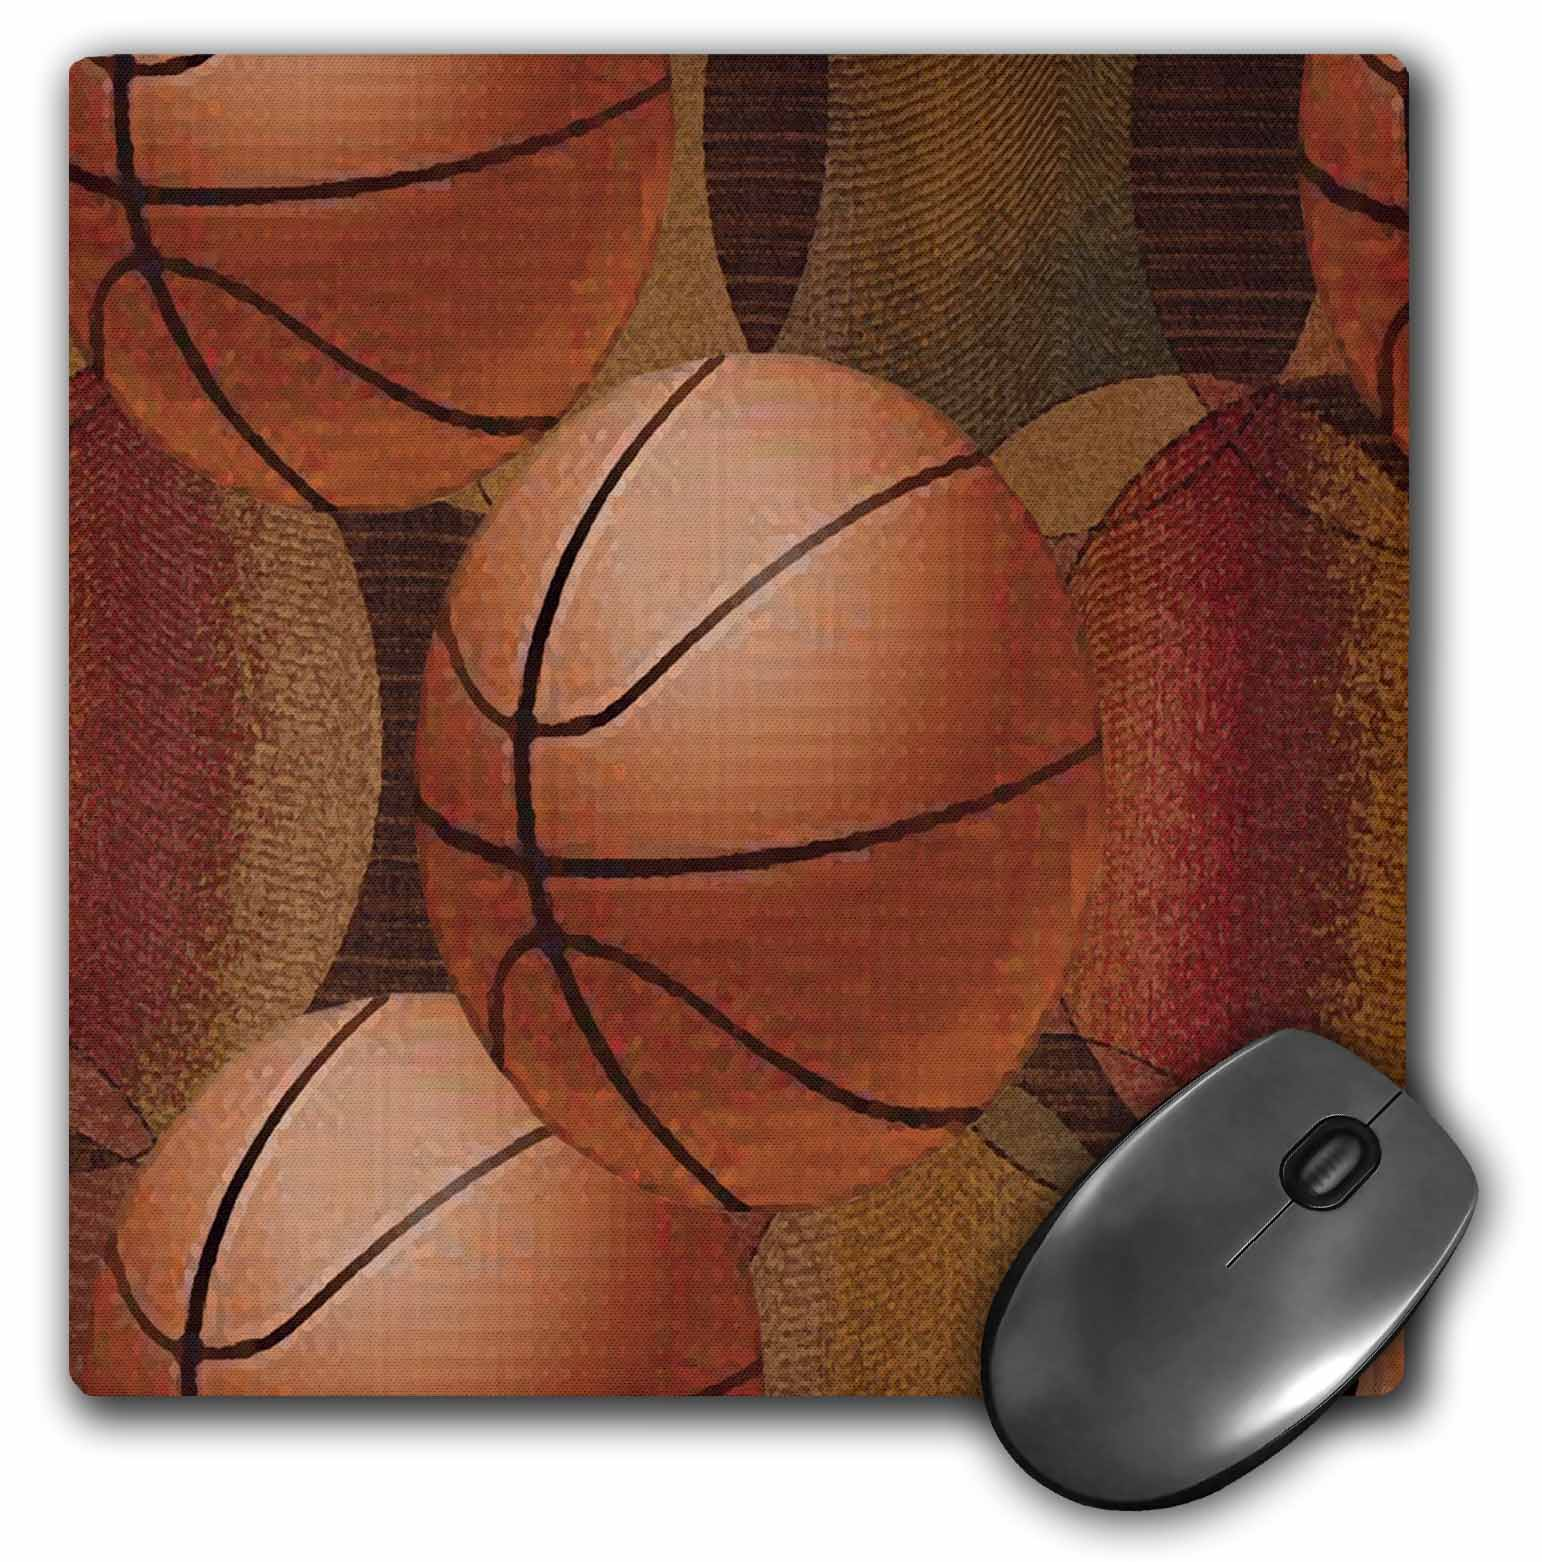 3dRose Basketballs, Mouse Pad, 8 by 8 inches by 3dRose